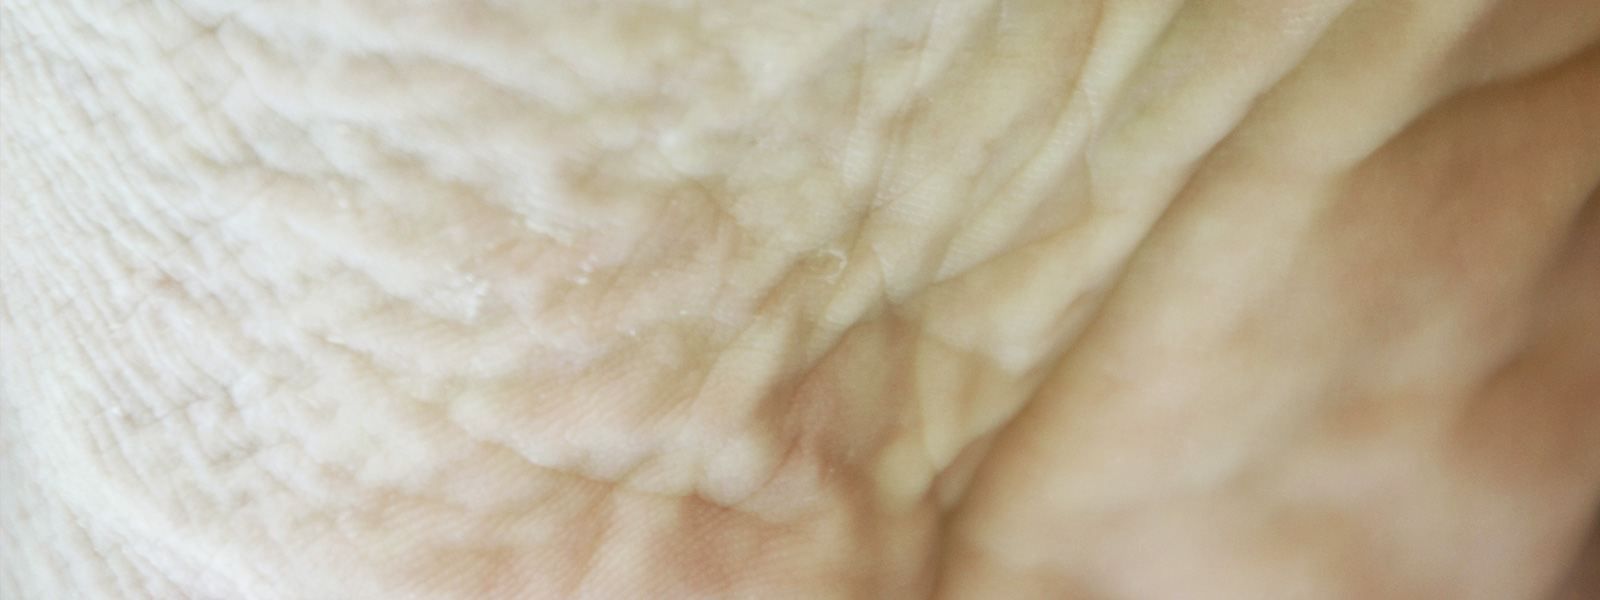 photo of macerated skin tissue